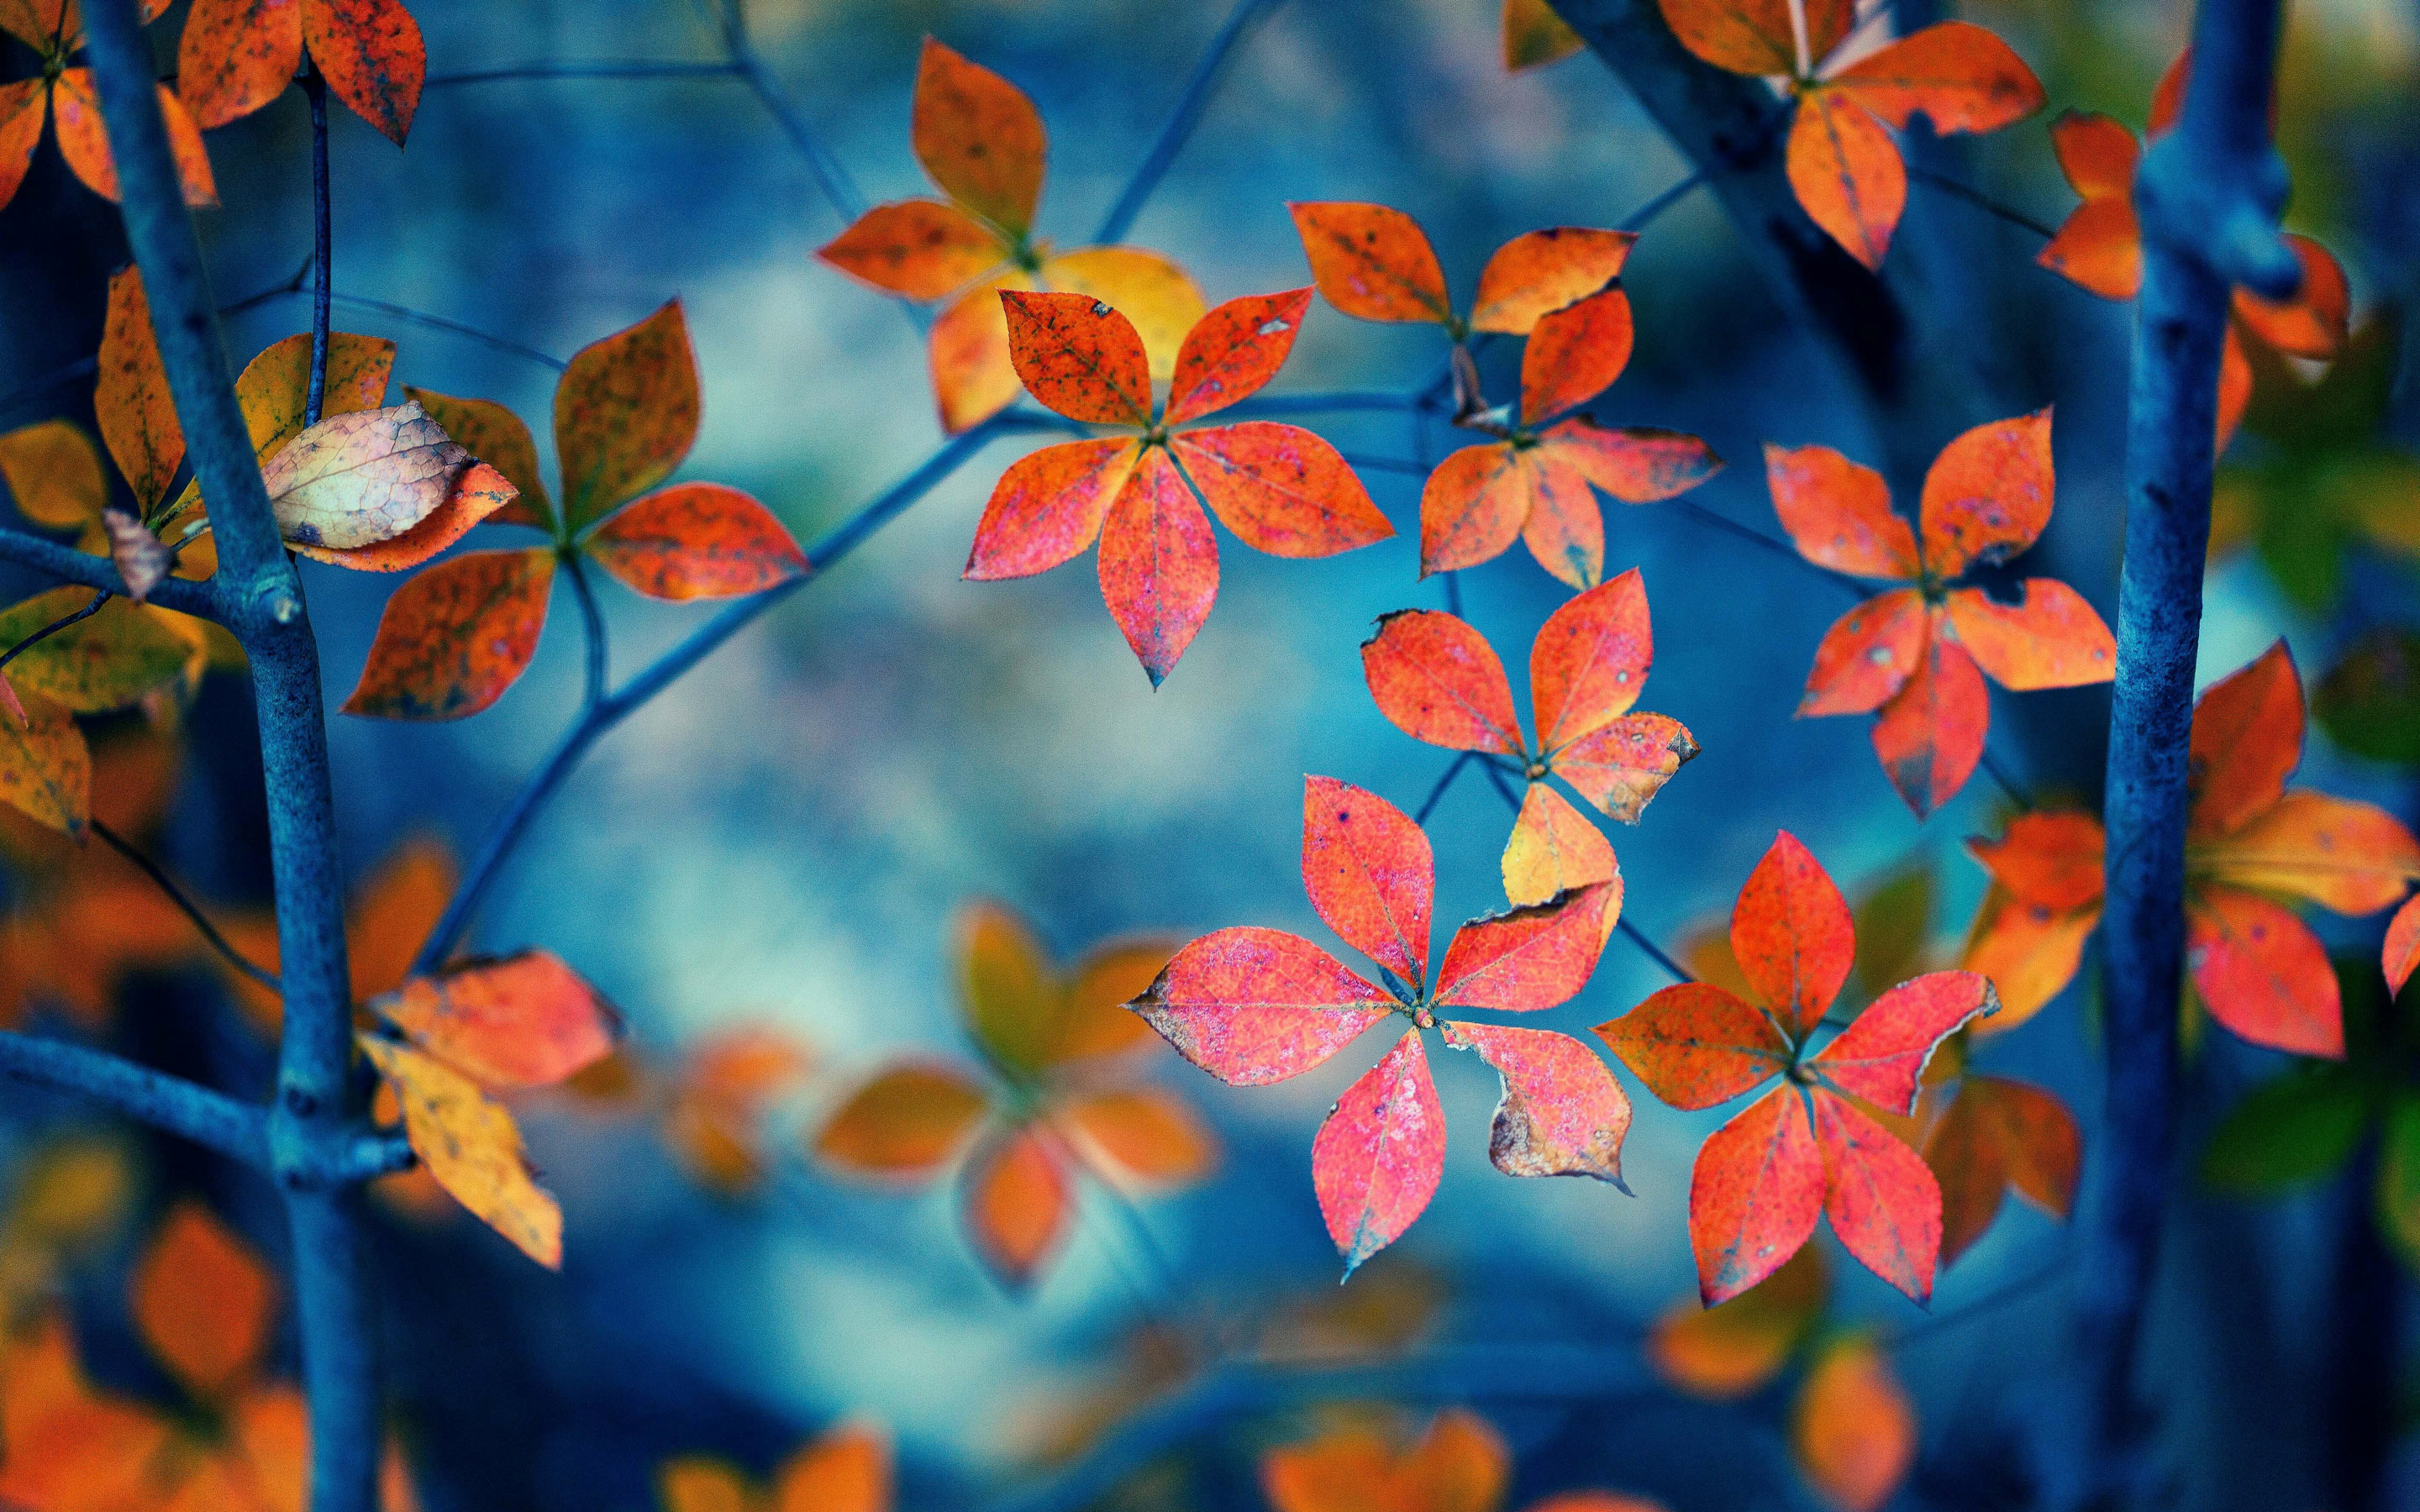 HD Fall Leaves Wallpaper - WallpaperSafari